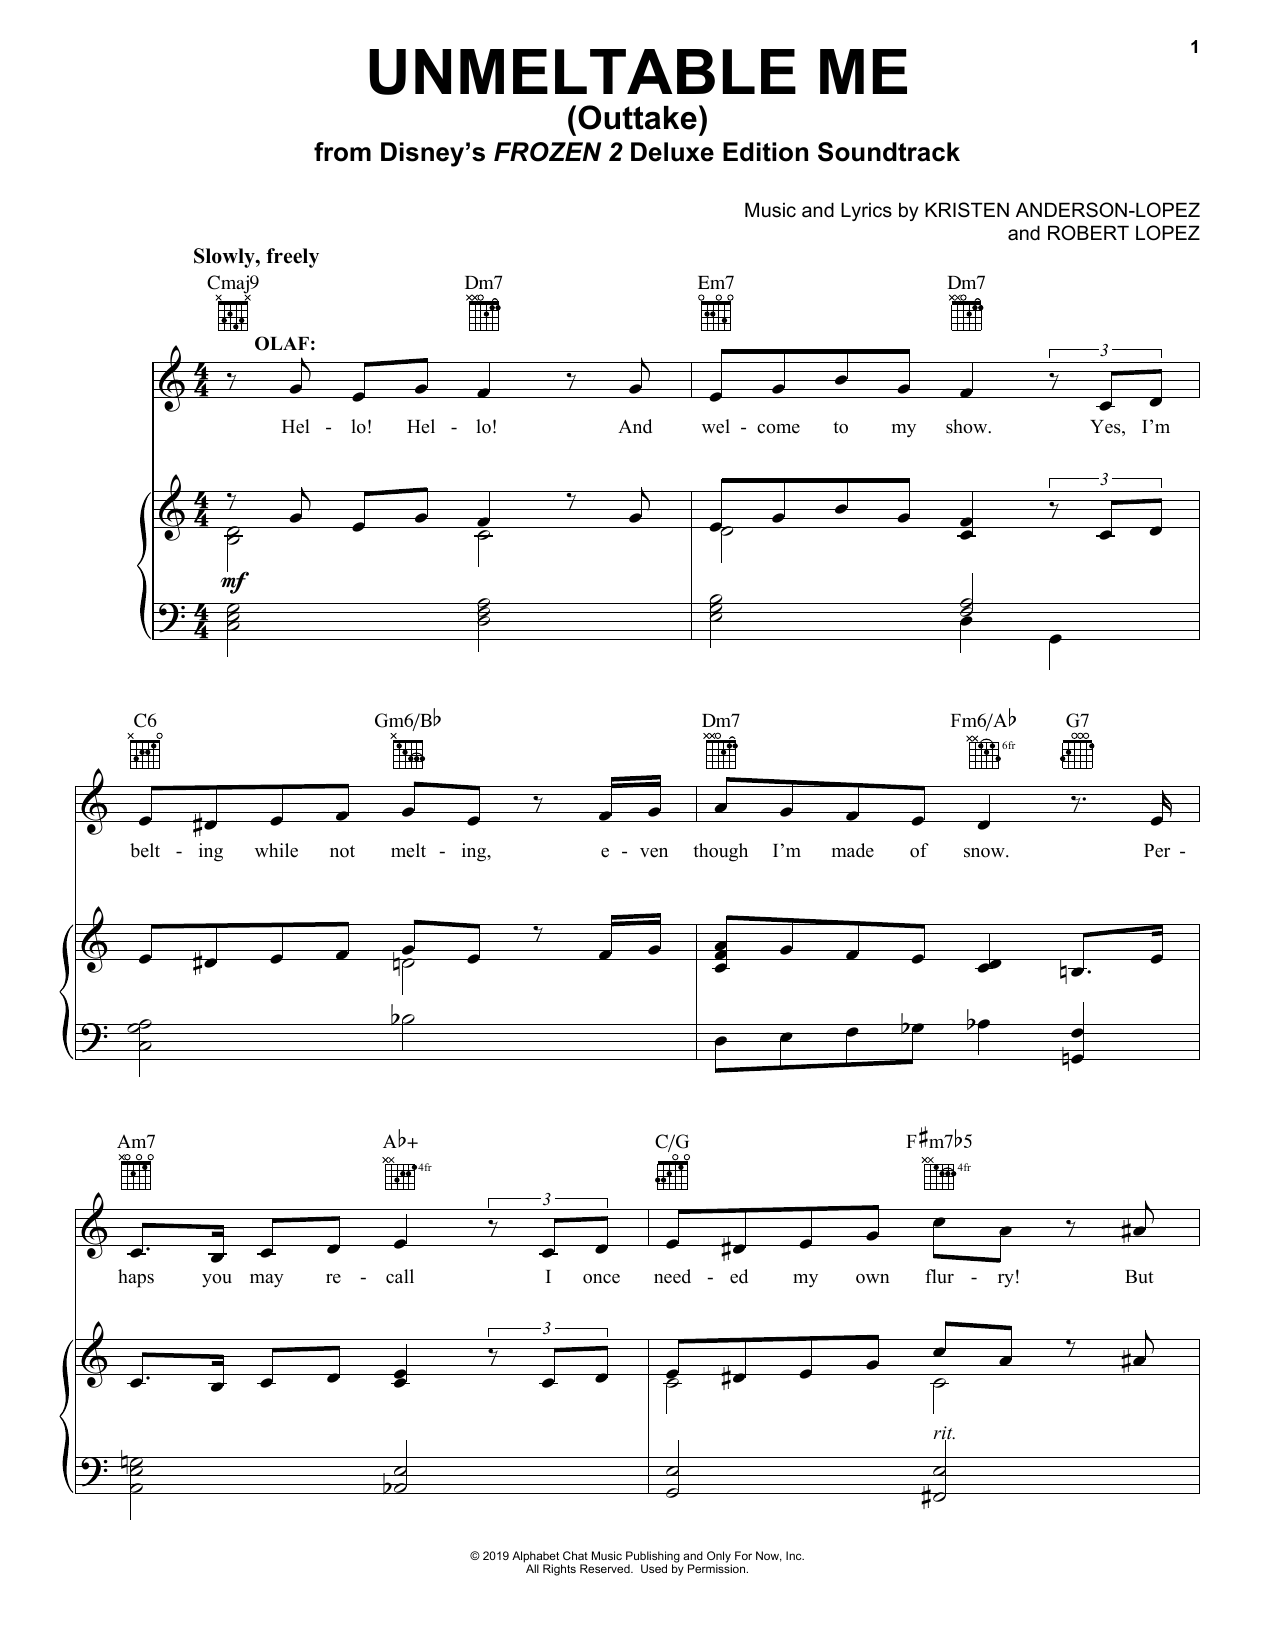 Unmeltable Me - Outtake (from Disney's Frozen 2) (Piano, Vocal & Guitar (Right-Hand Melody))